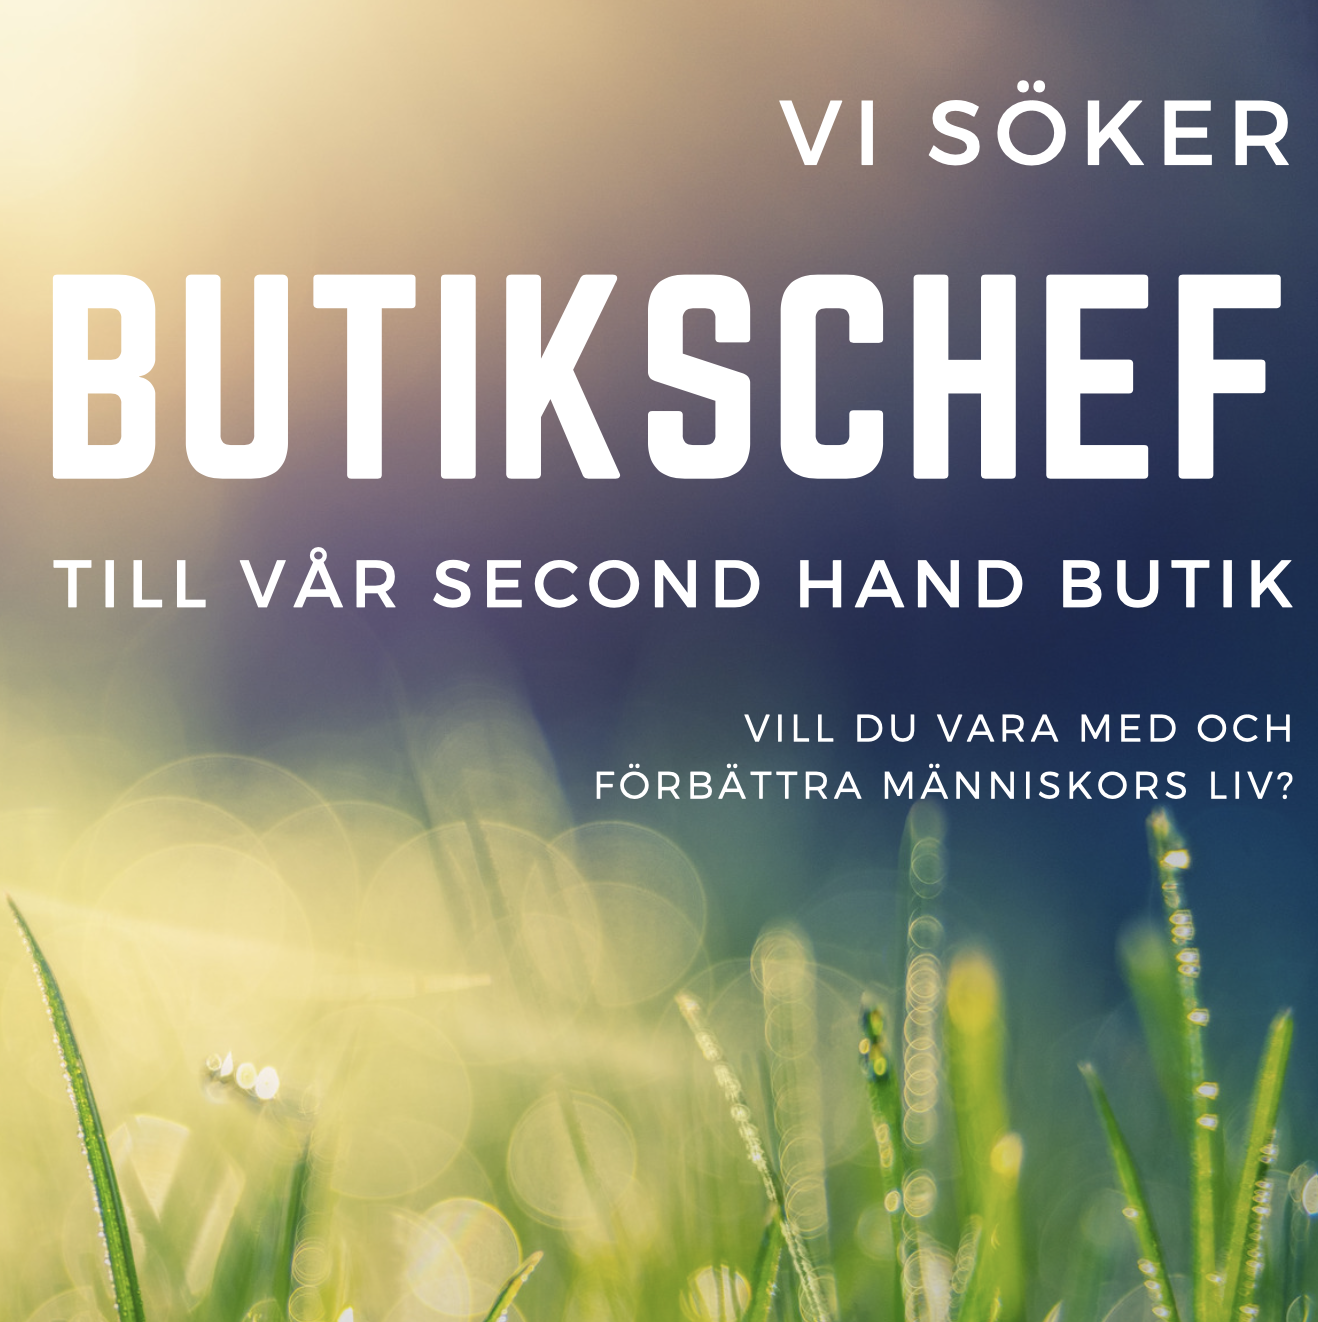 BUTIKSCHEF SECOND HAND